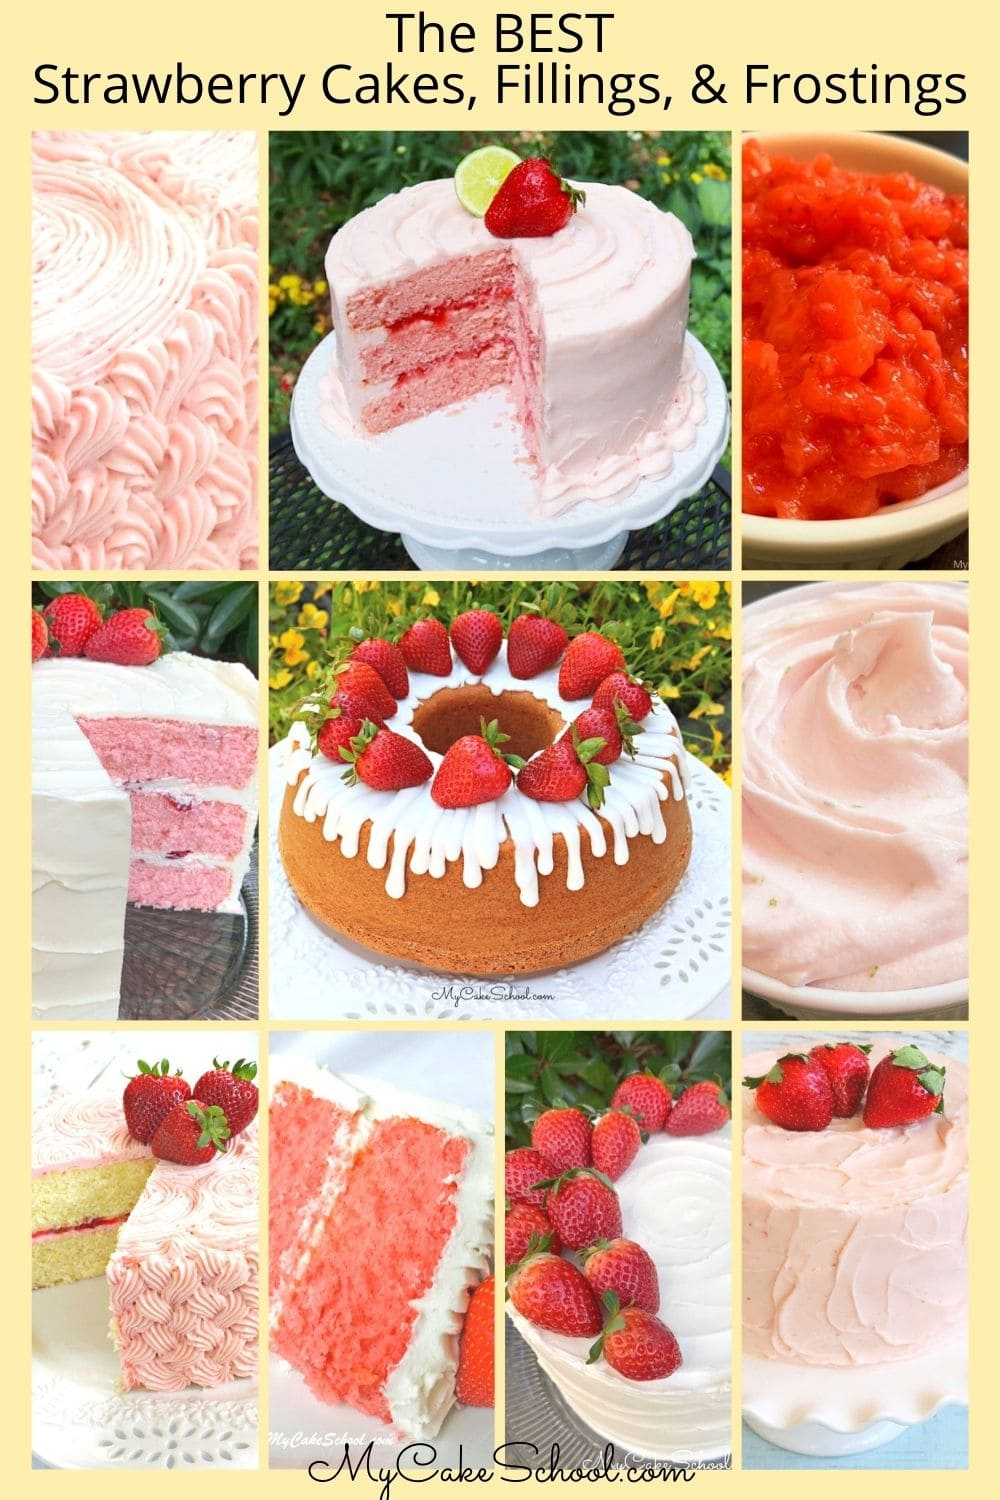 Favorite Strawberry Cakes, Fillings, and Frostings